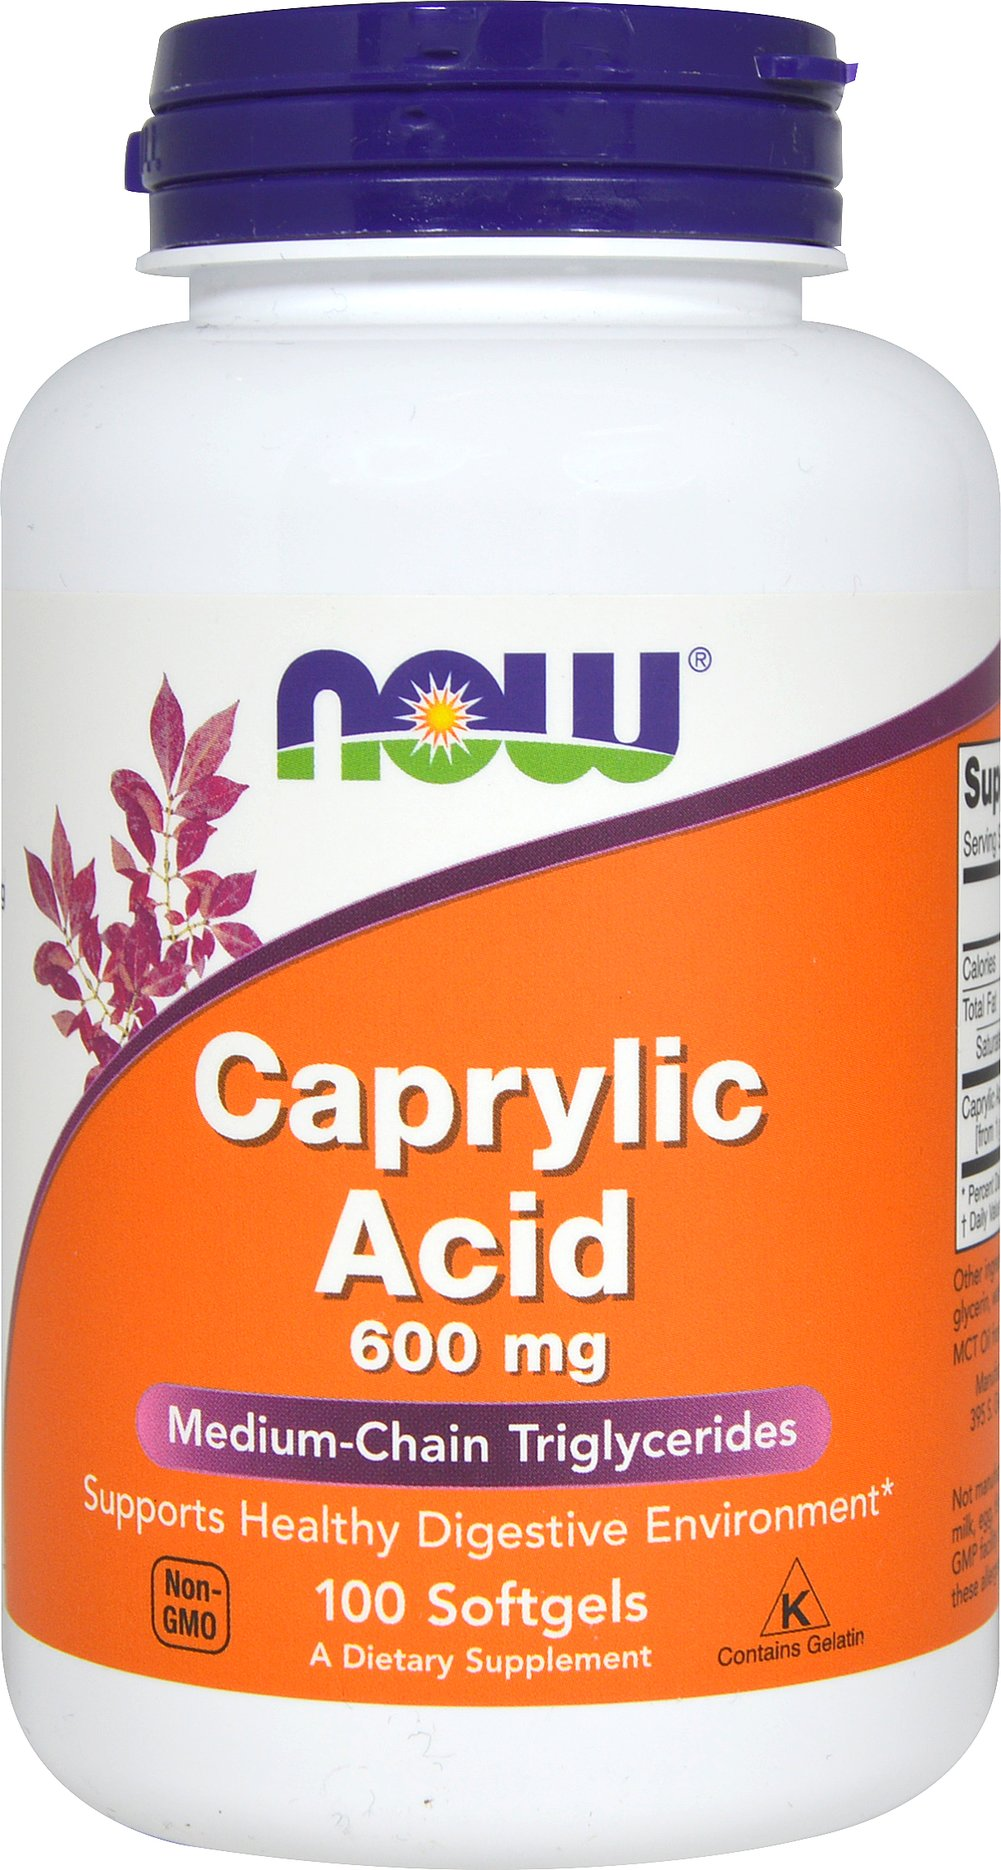 Caprylic Acid 600 mg  100 Softgels 600 mg $9.99